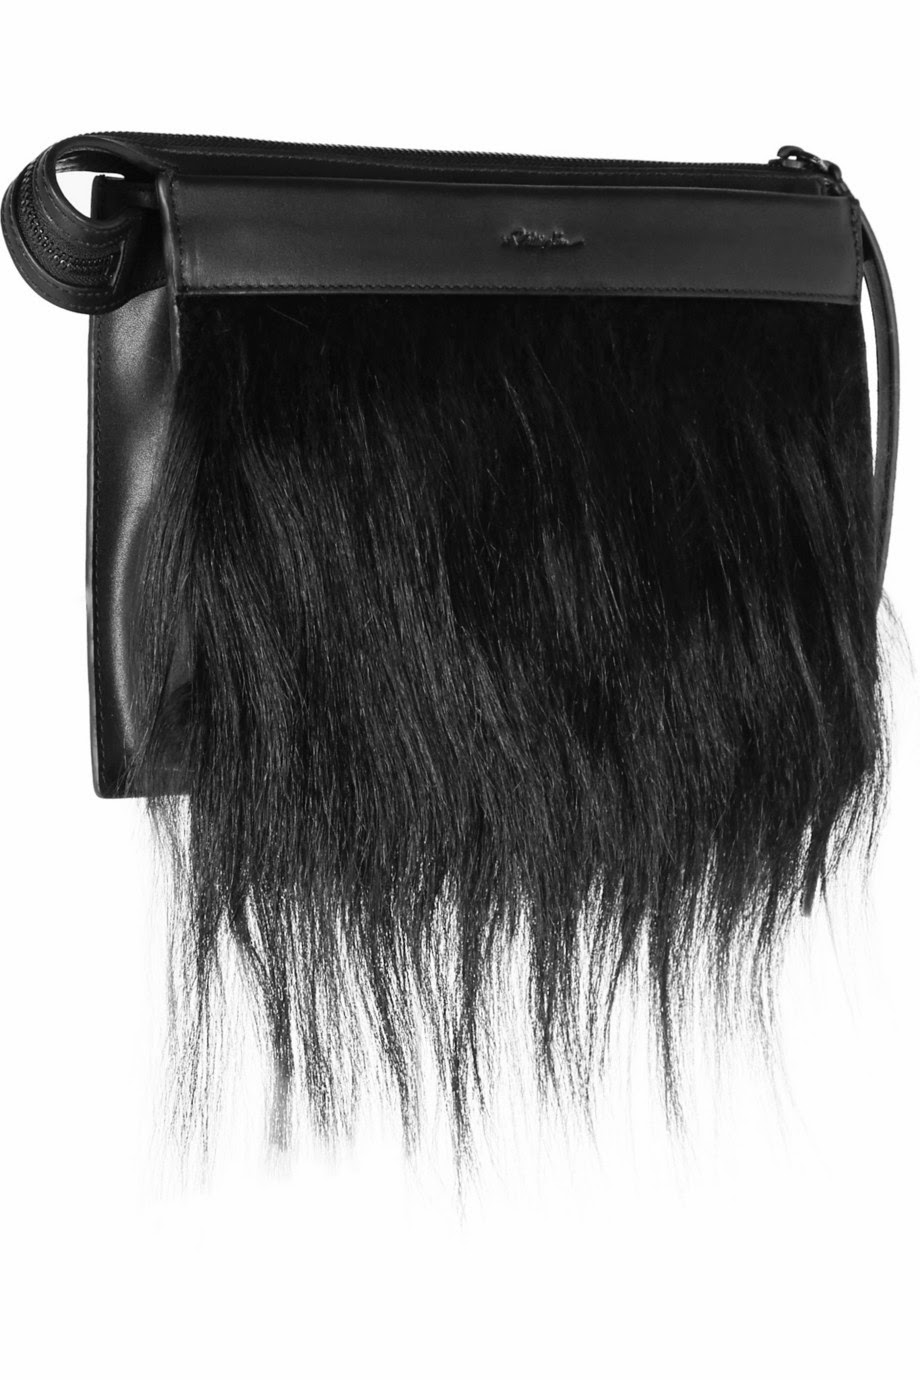 Net-a-Porter 3.1 Phillip Lim Depeche small goat hair-trimmed leather clutch